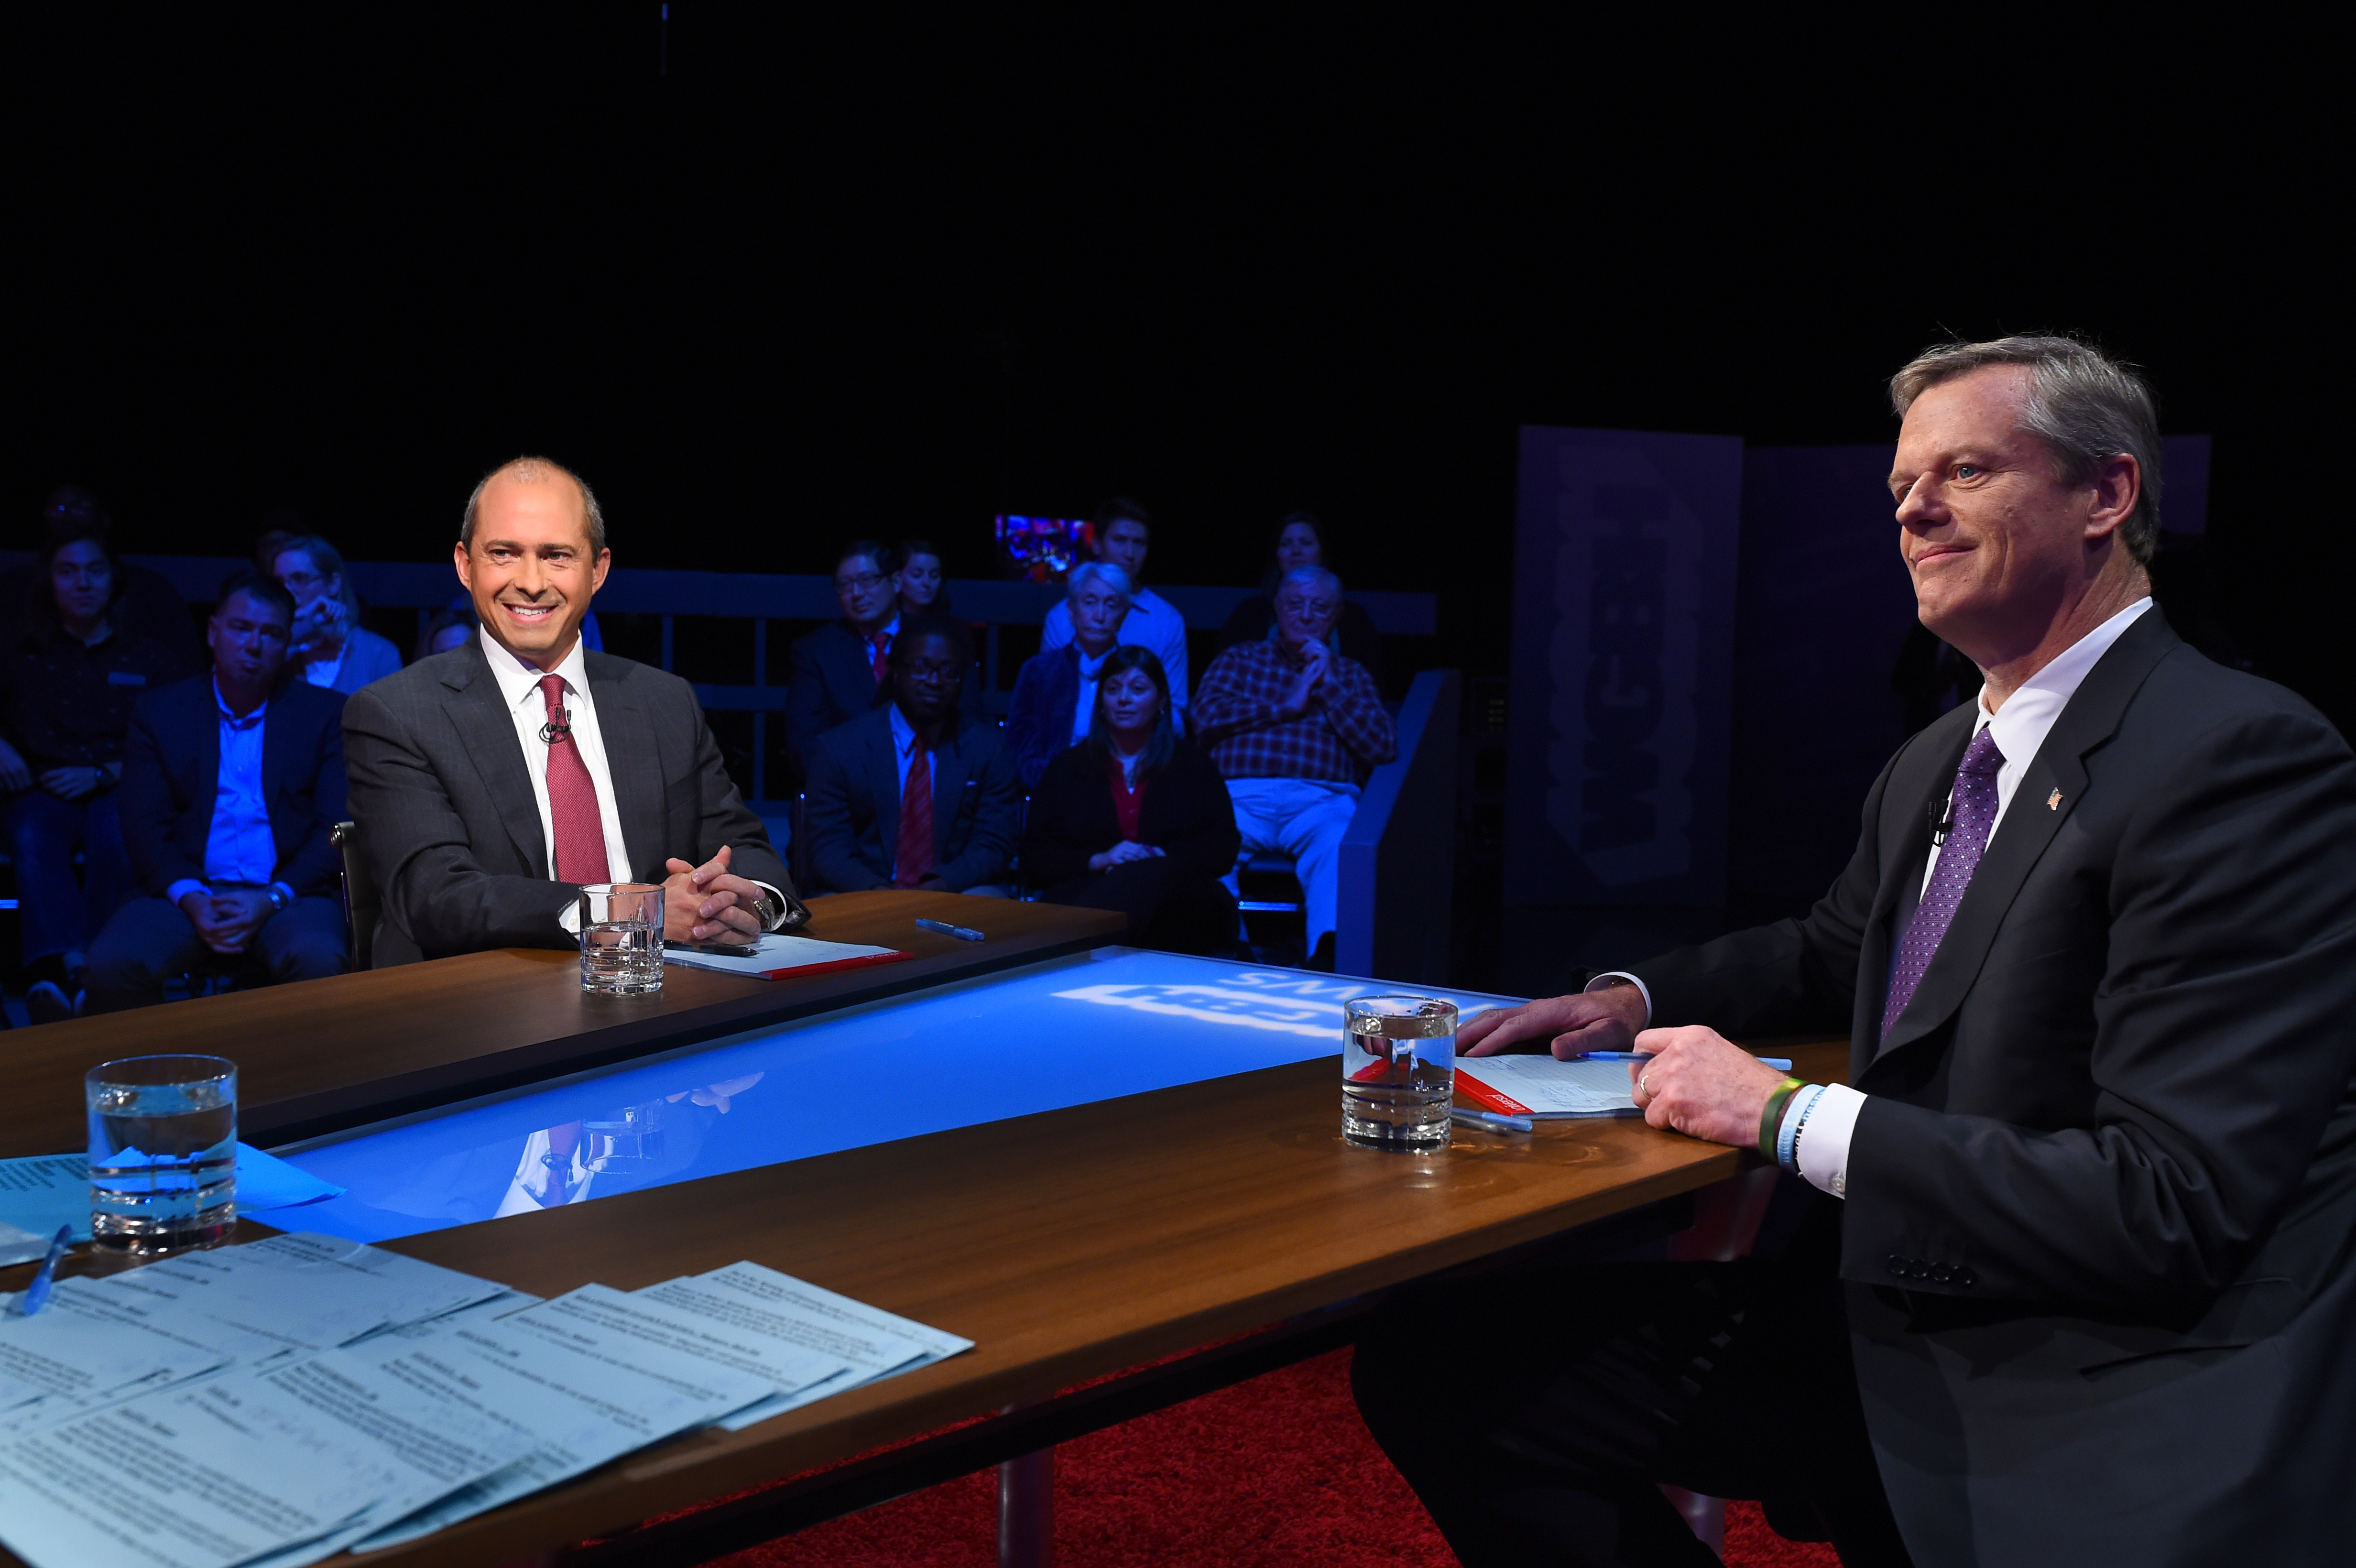 Massachusetts Republican Governor Charlie Baker and Democratic nominee Jay Gonzalez square off in the second 2018 Massachusetts Gubernatorial debate at the WGBH Studios in Brighton. / Photo by Meredith Nierman / WGBH News